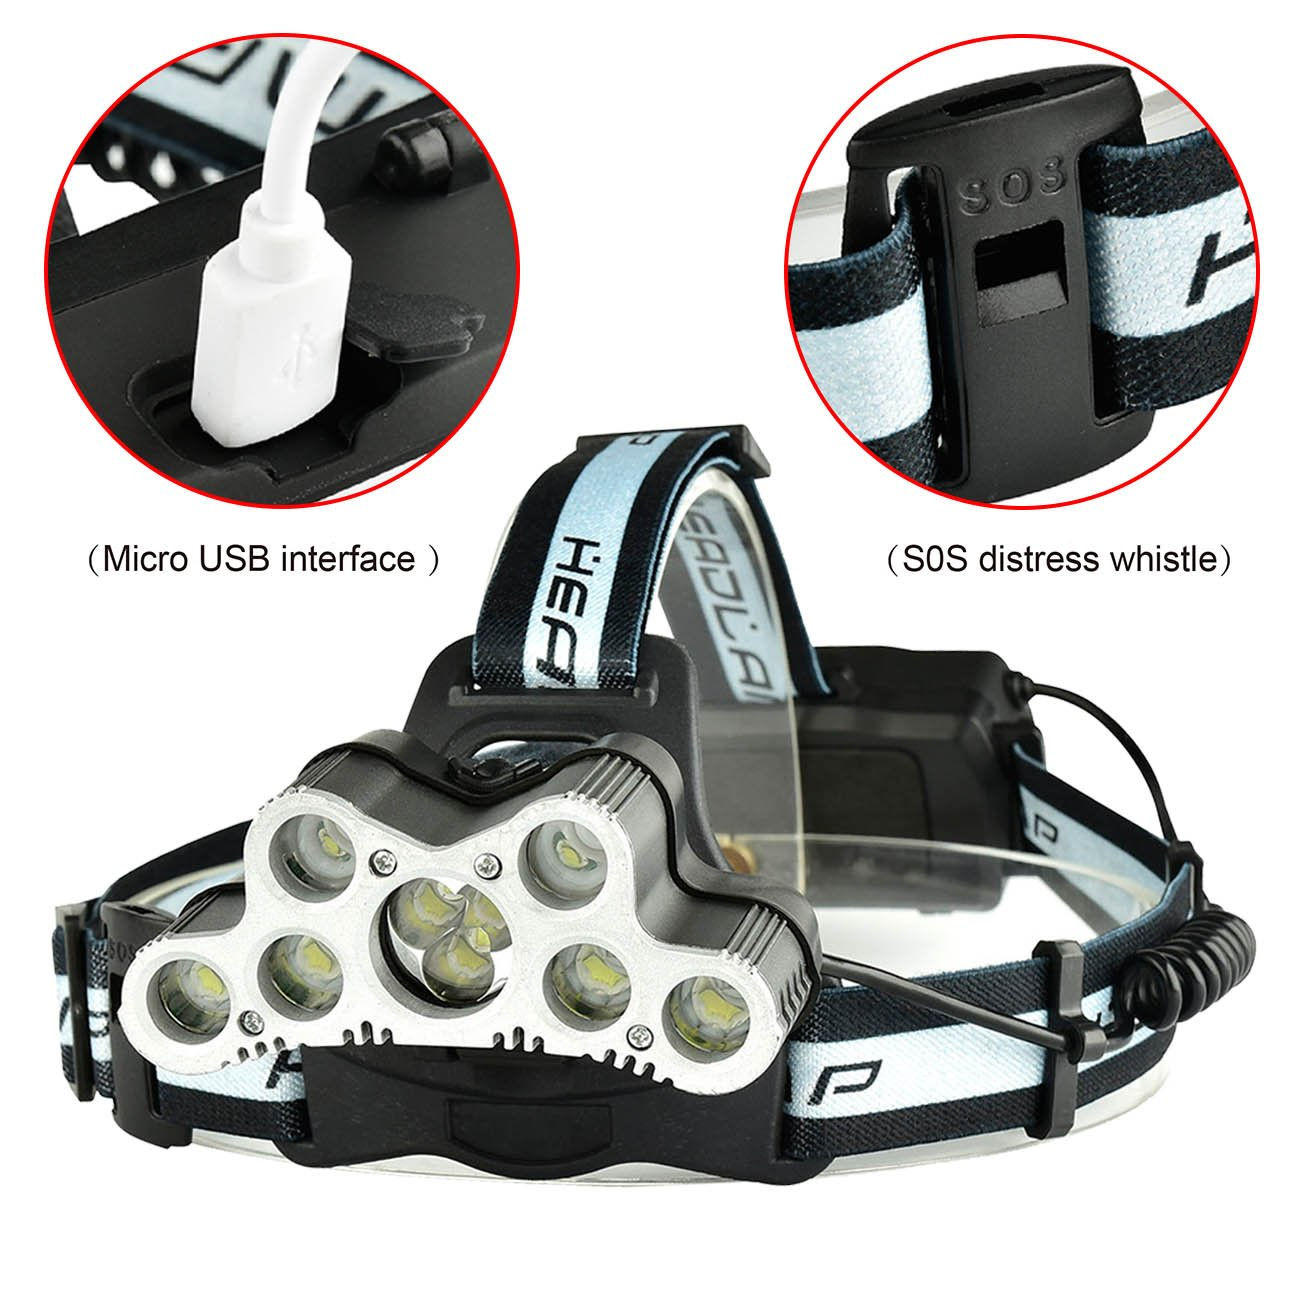 WishDeal 7X T6 and 2 x XPE LED Rechargeable Headlamp 9 LED Headlight Travel Head Torch with Batteries and USB Cable